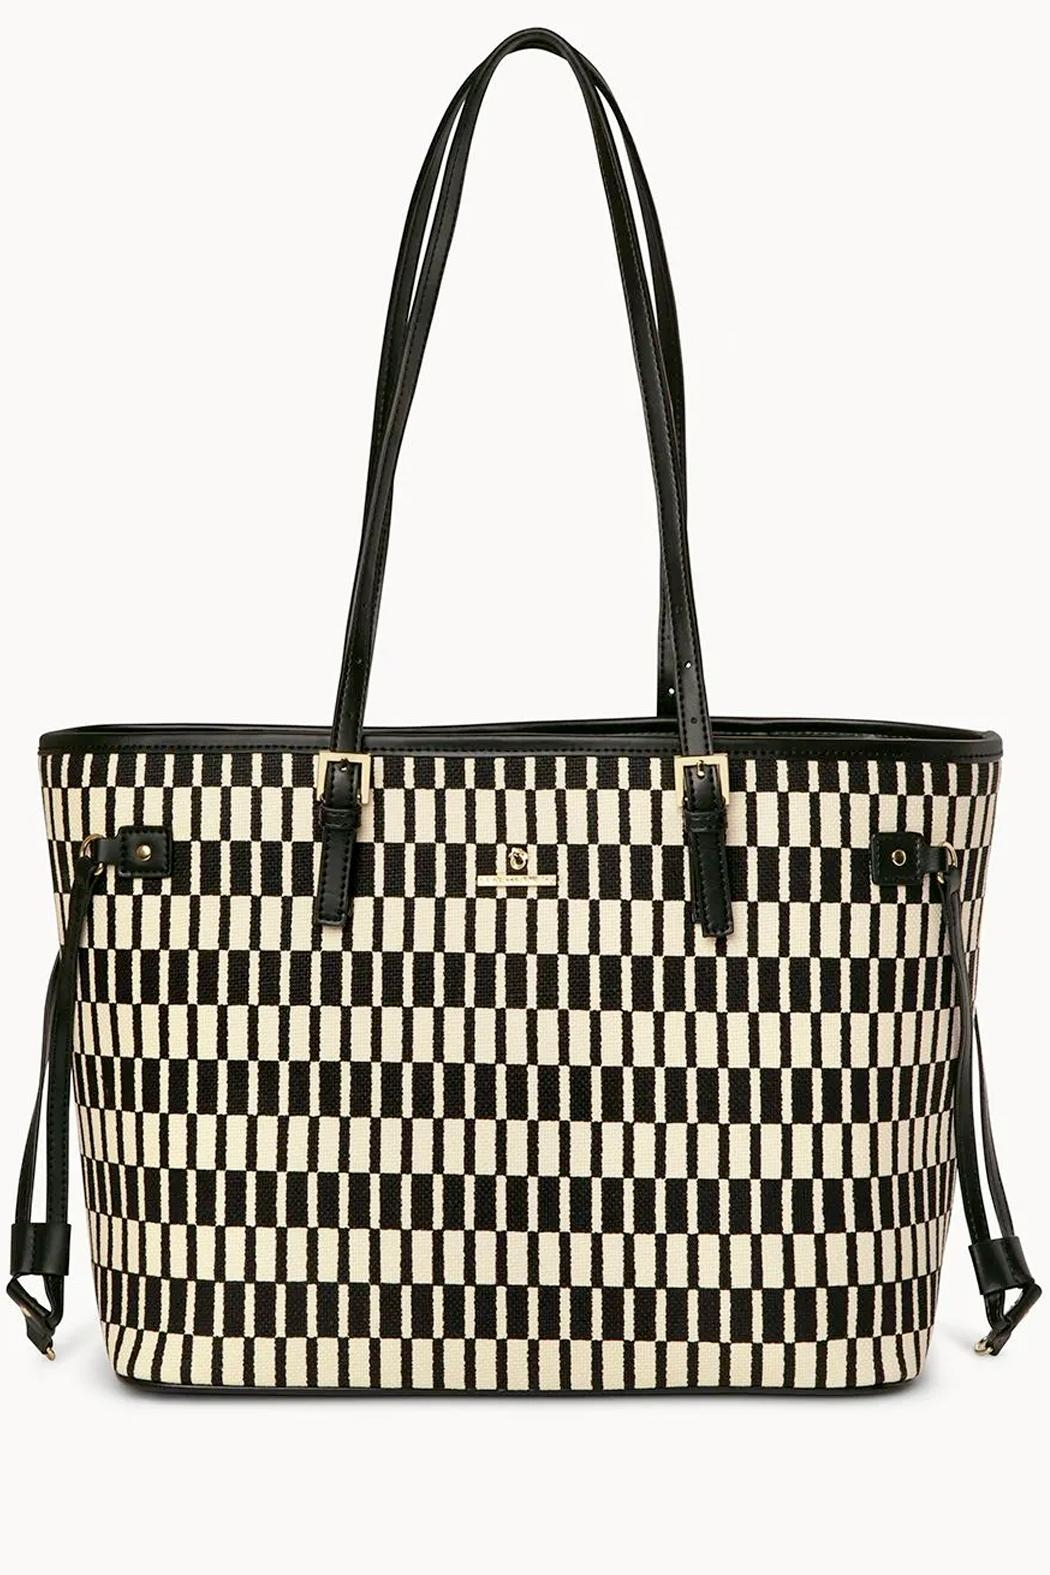 Spartina 449 West Bluff Tote - Main Image